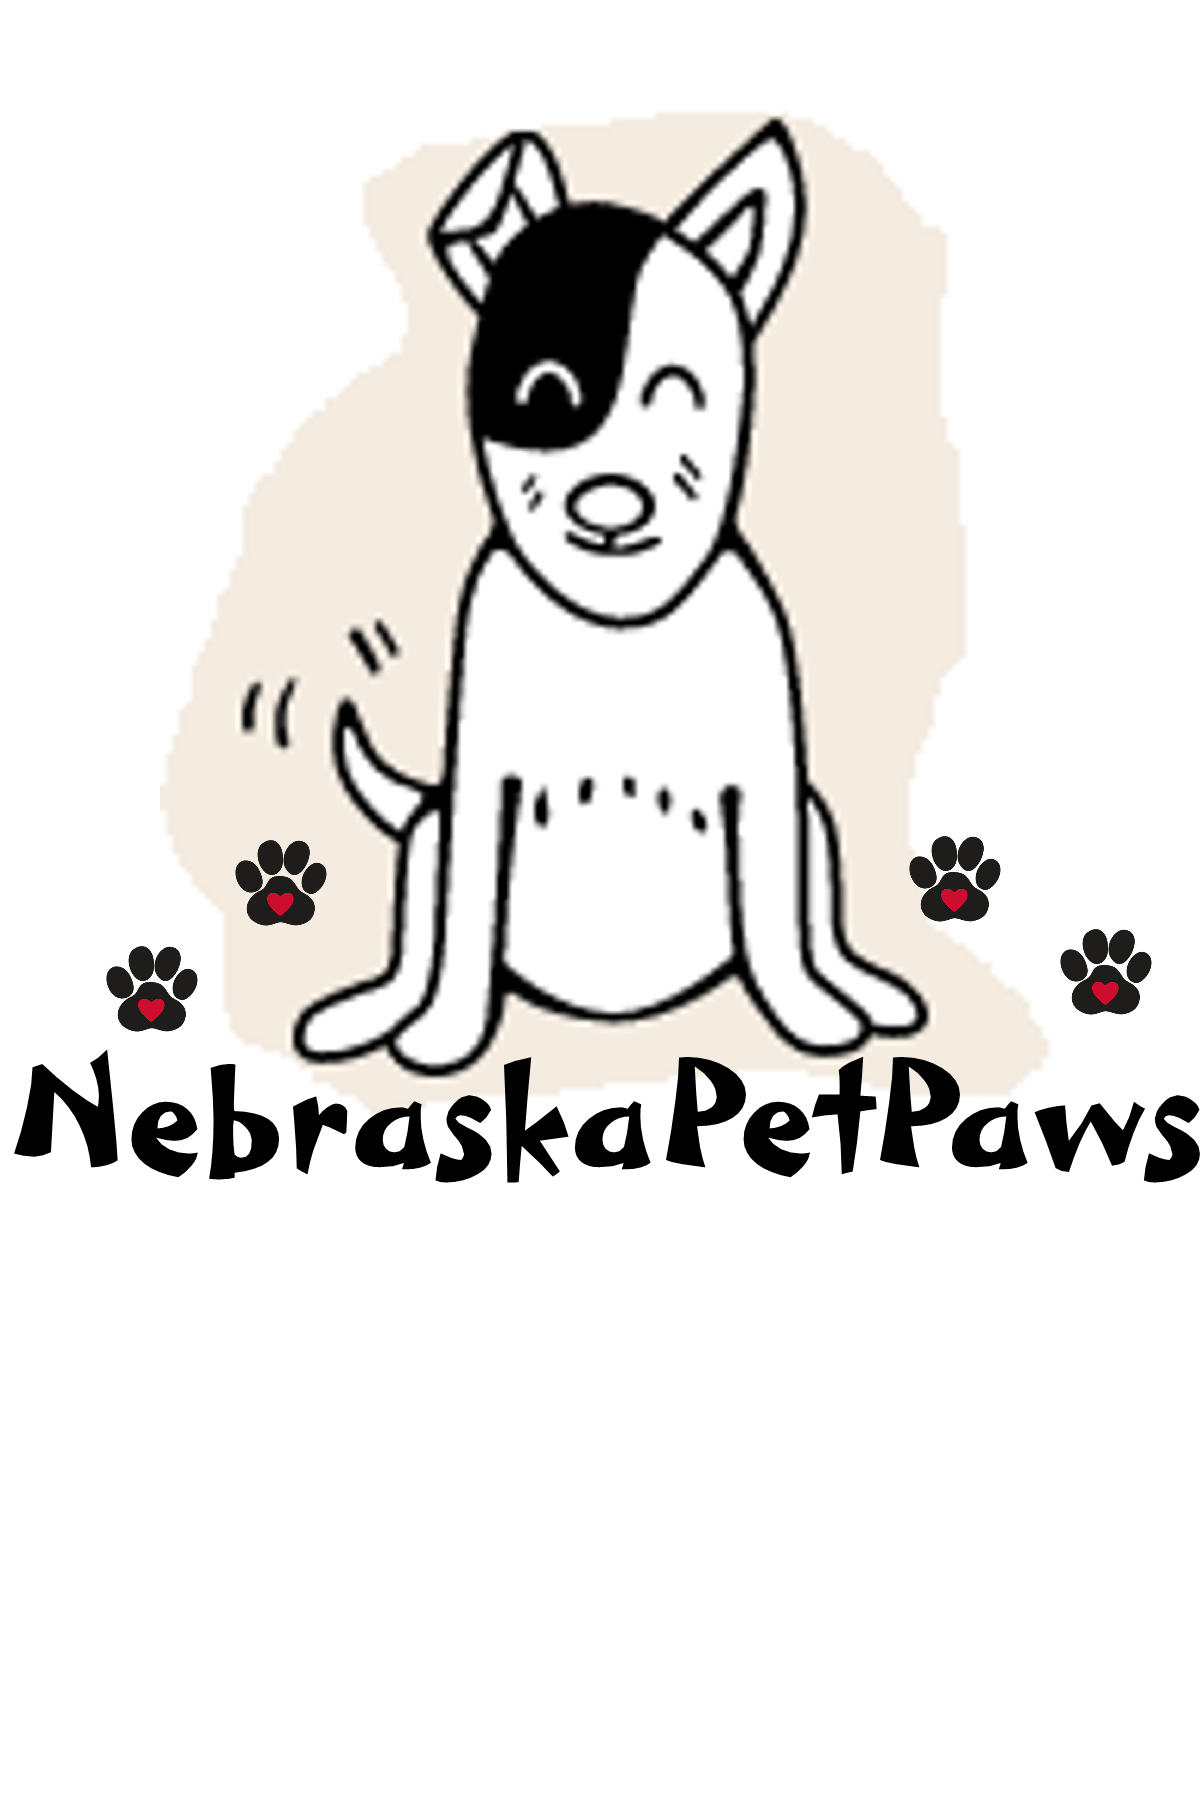 NebraskaPetPaws Logo 888 (1)